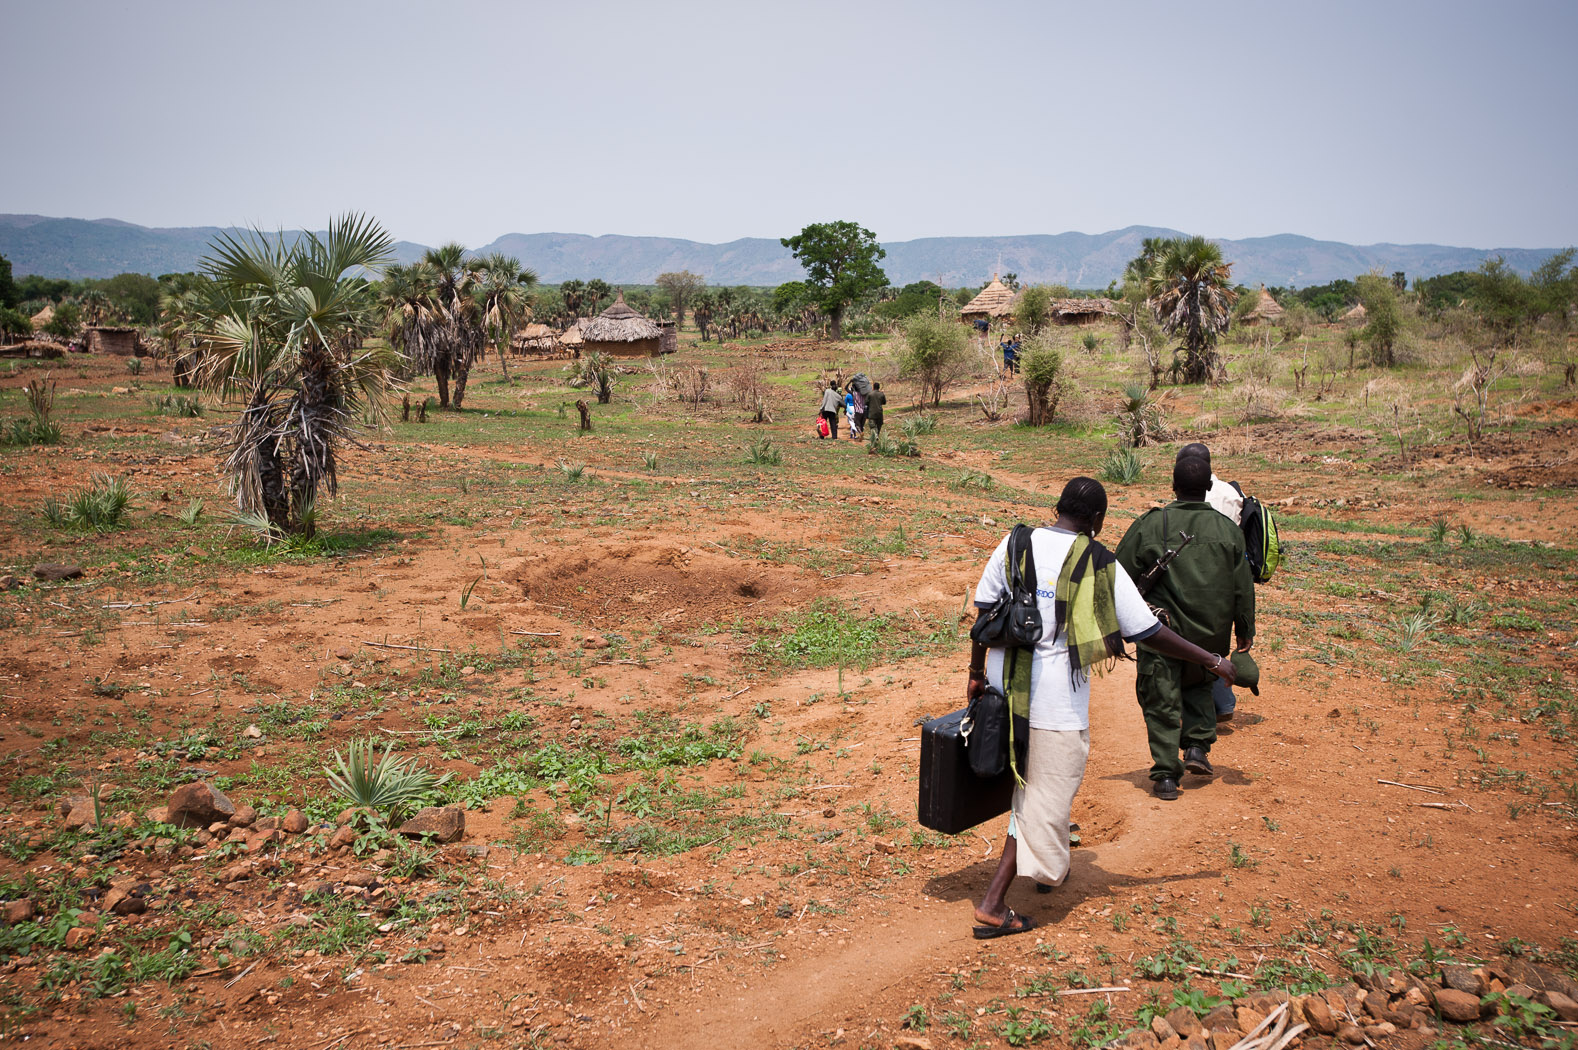 Many of the Nuba, however, have fled their homes and the region. Here, a group of Nuba walk across scrubland south-east of Kadugli with a few belongings packed into suitcases, hoping to find a way out of South Kordofan.